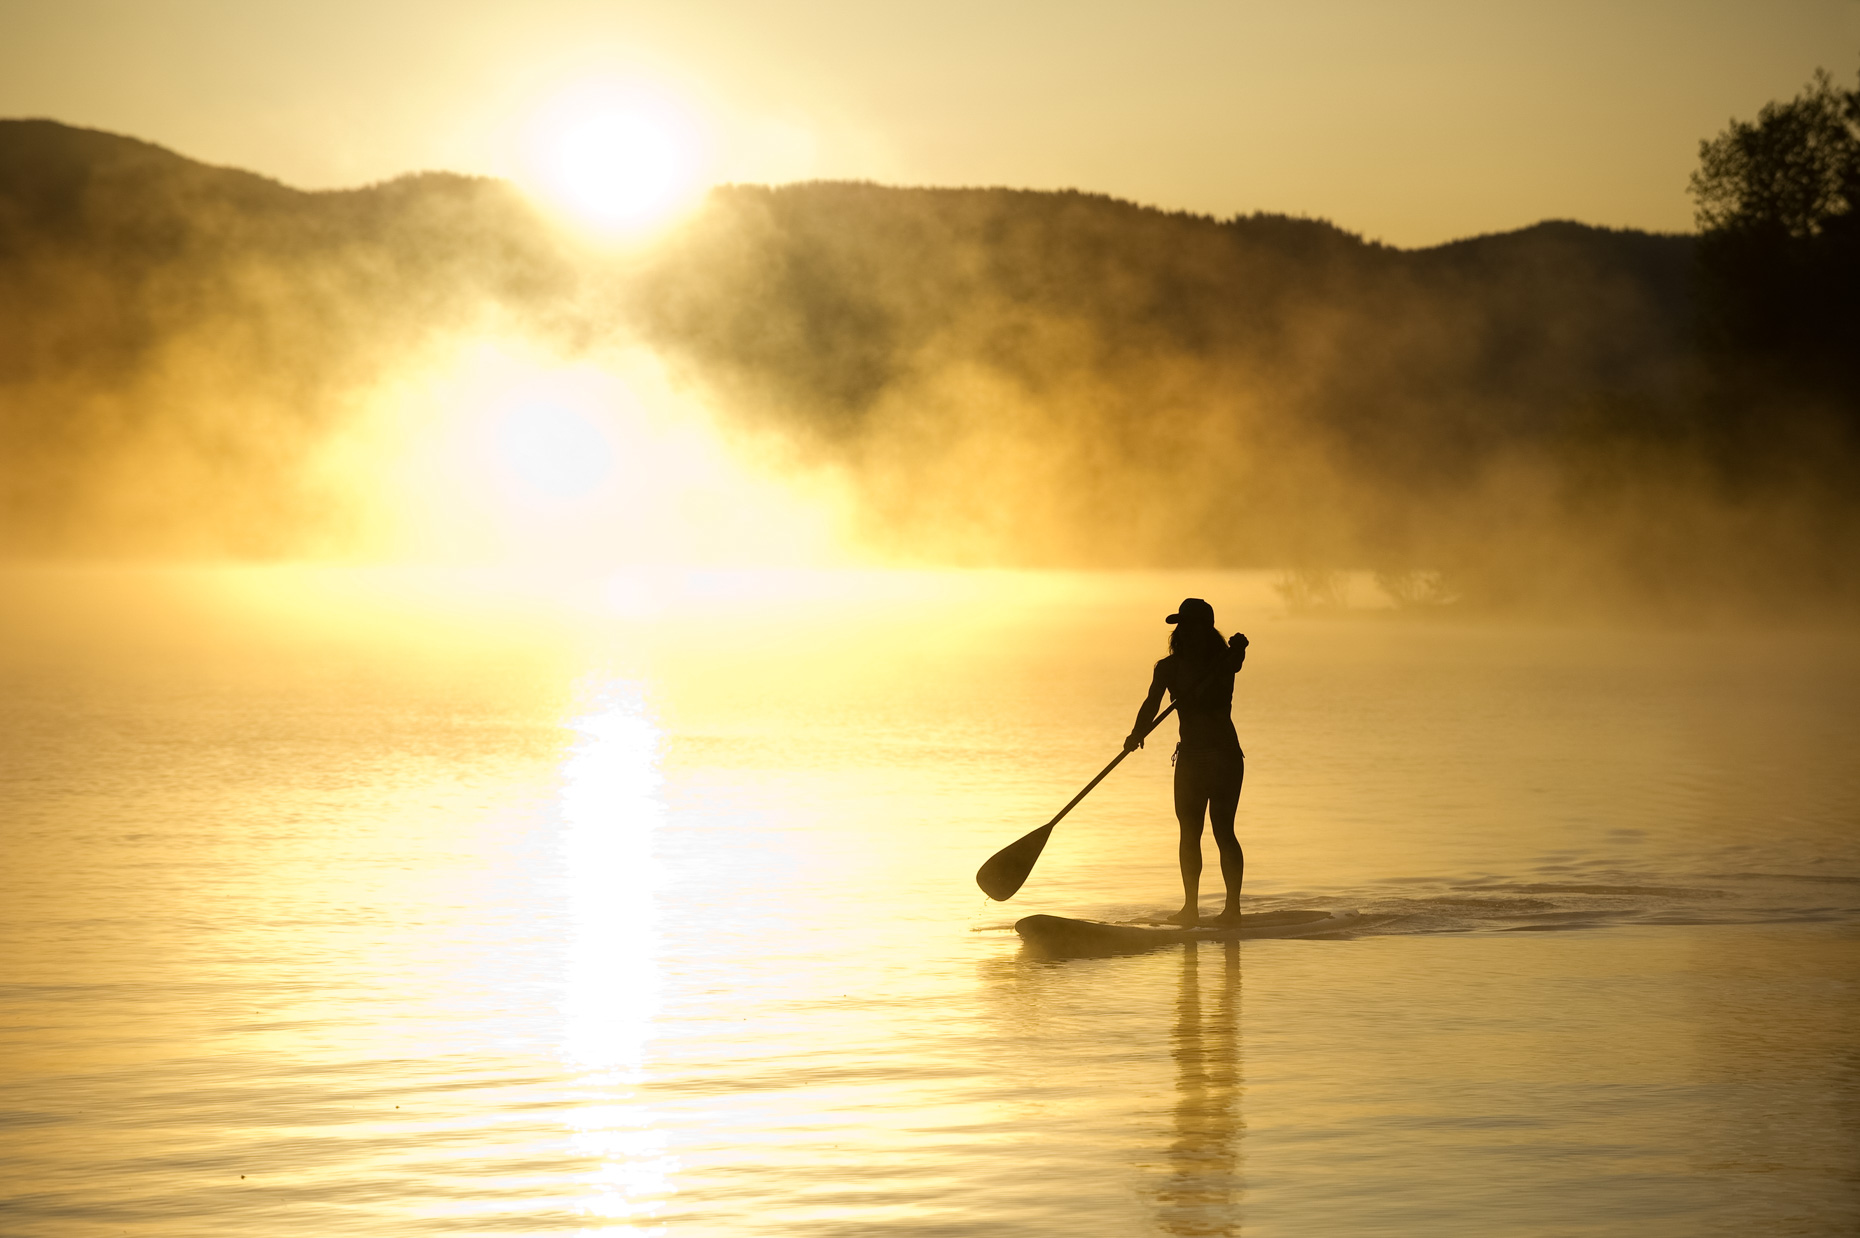 Sunrise Stand Up Paddleboarding (SUP) - Lake Tahoe, California